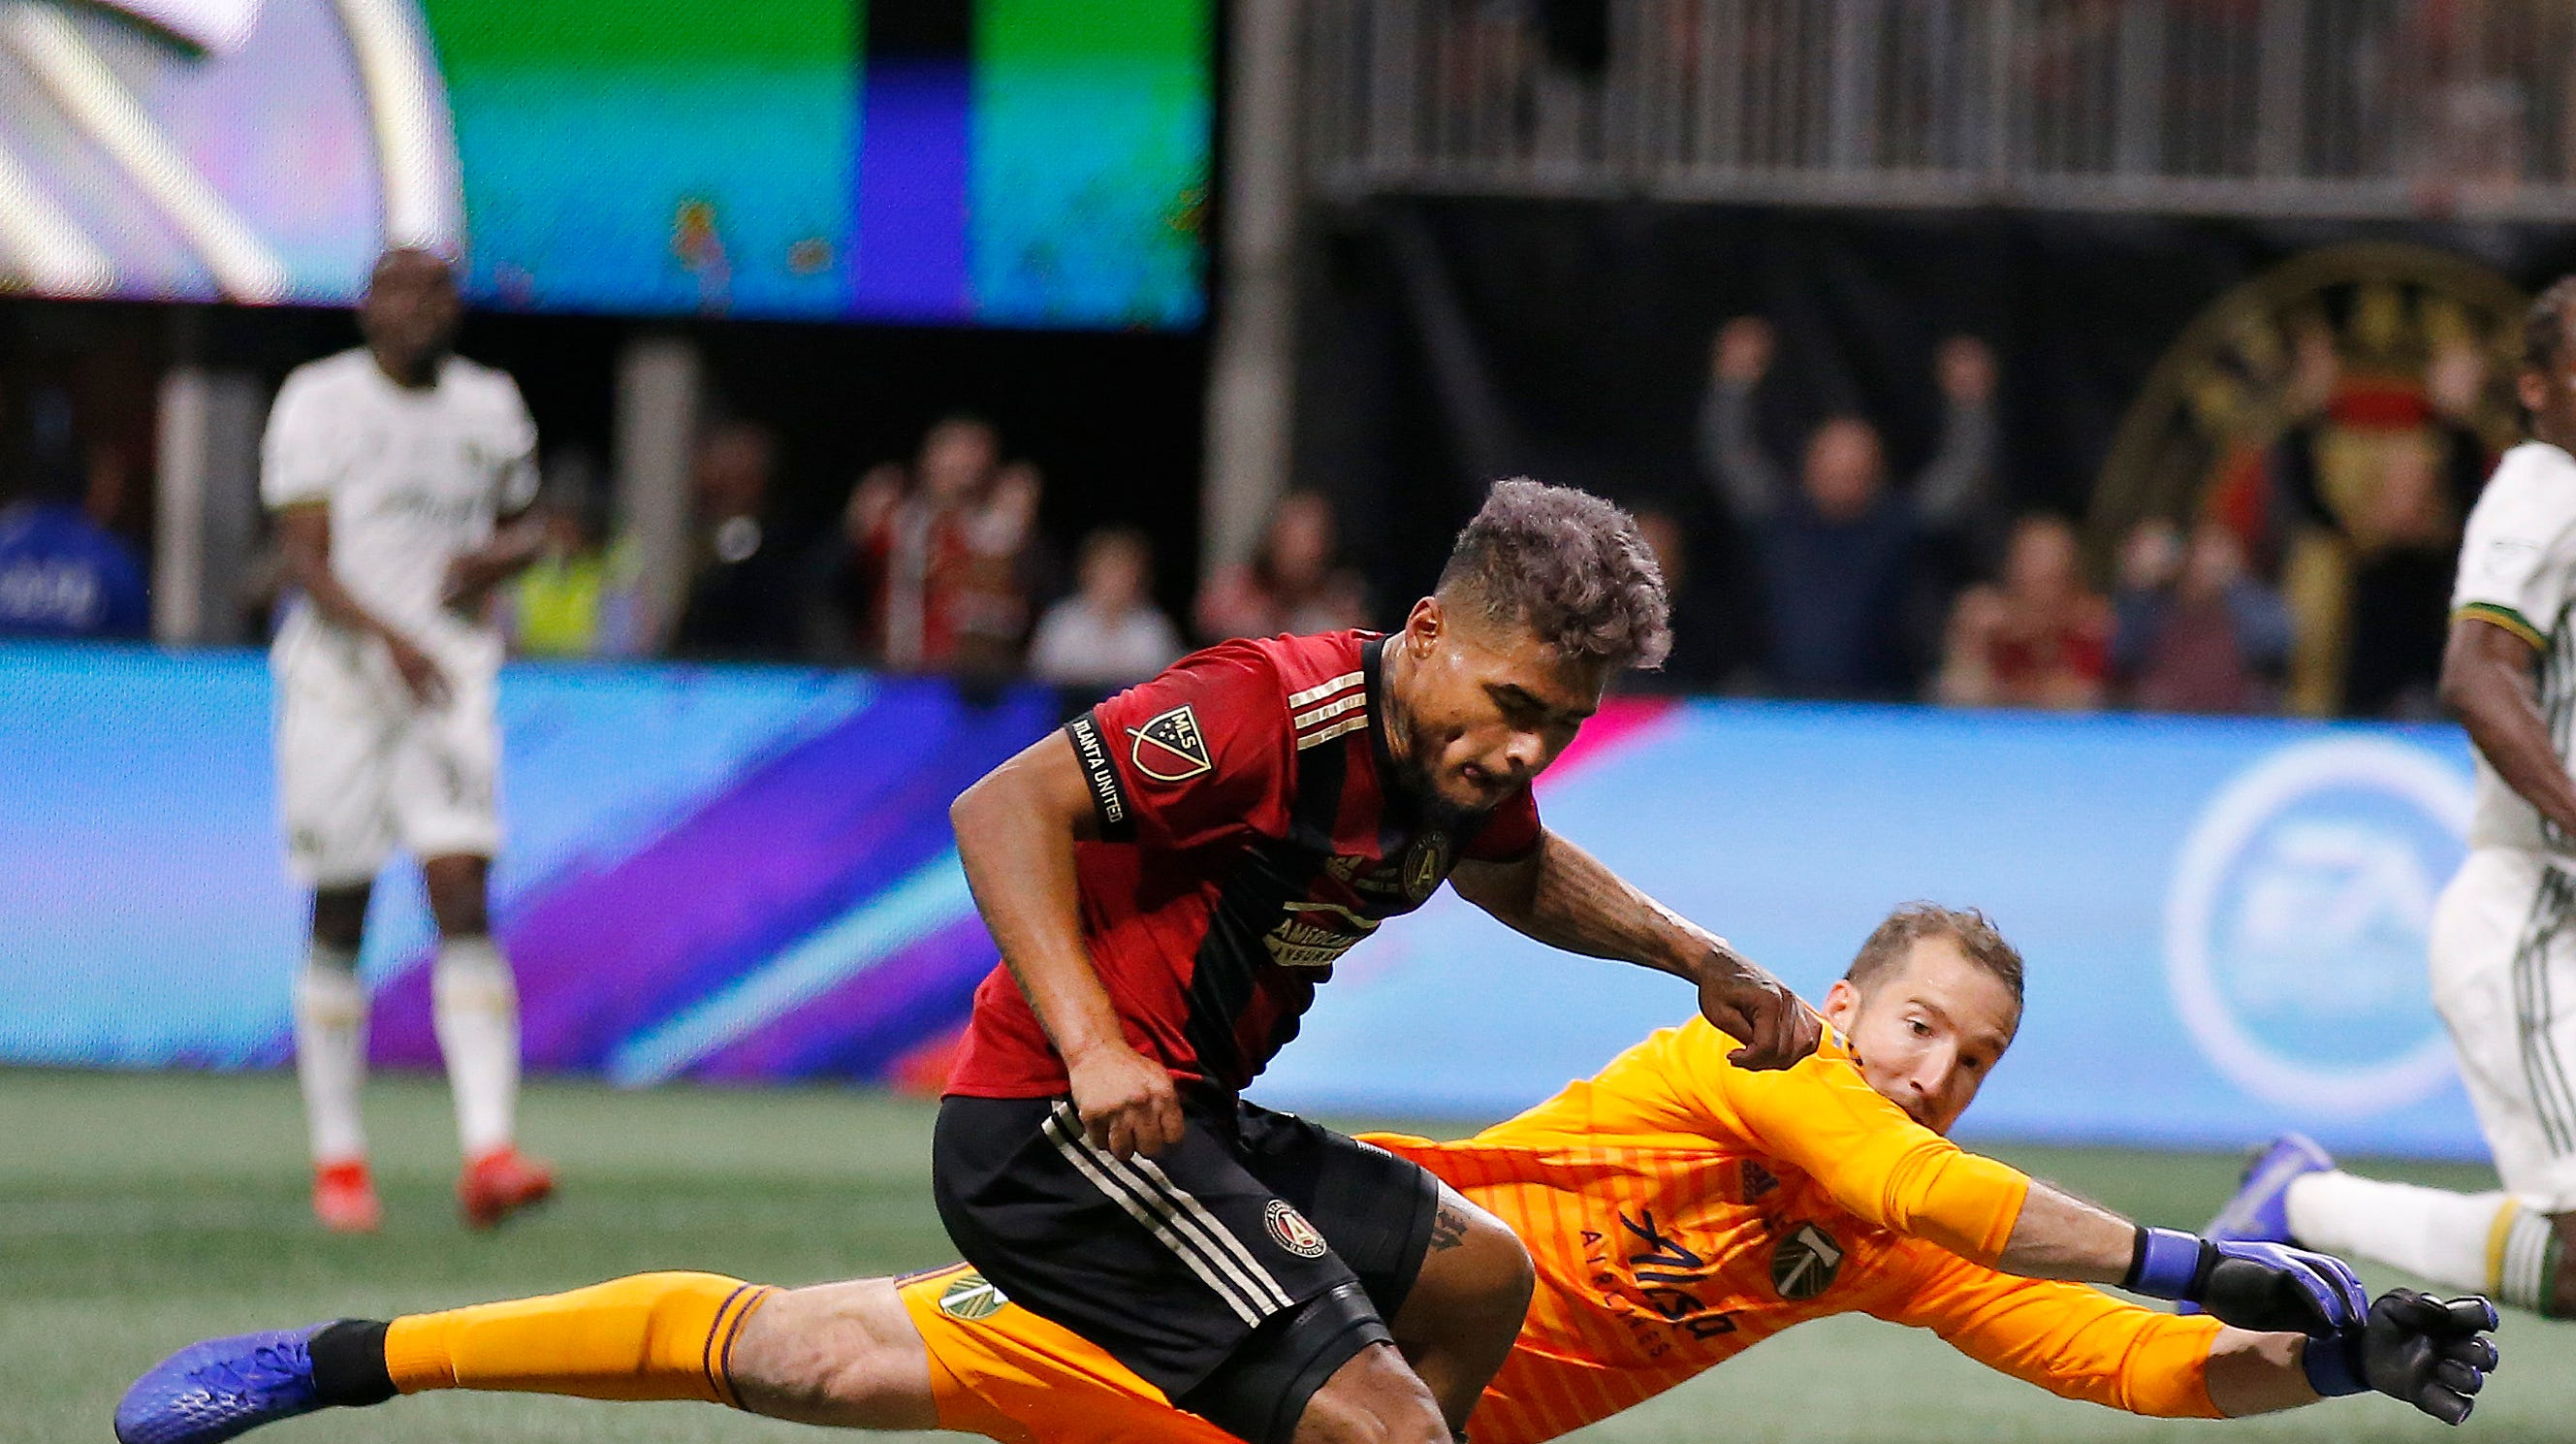 Atlanta United forward Josef Martinez (7) beats Portland Timbers goalkeeper Jeff Attinella (1) to score a goal during the first half of the MLS Cup championship soccer game, Saturday, Dec. 8, 2018, in Atlanta.